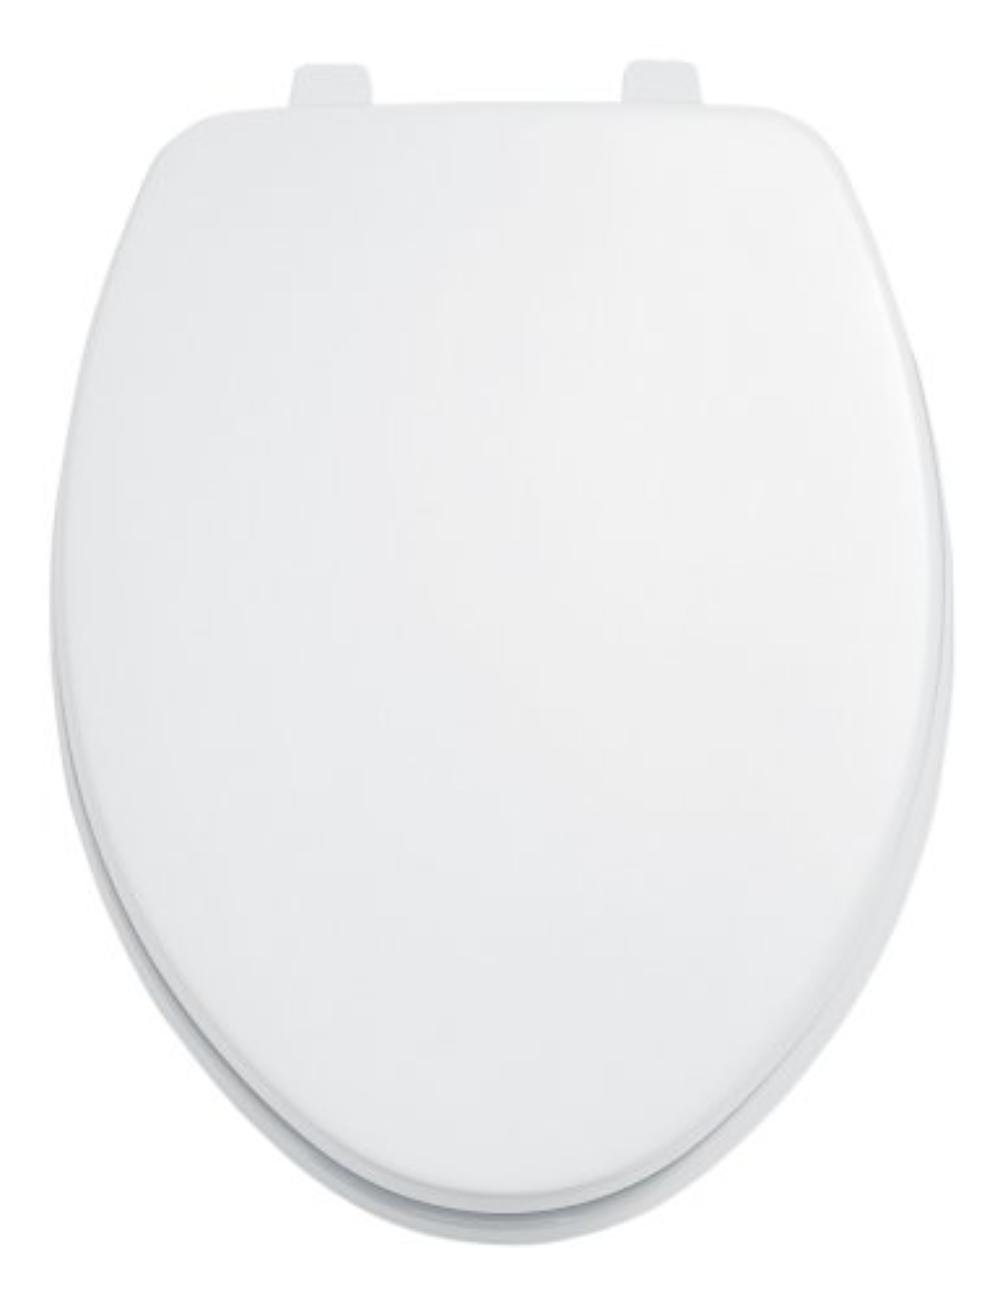 Phenomenal 5311 012 020 Laurel Elongated Toilet Seat With Cover White High Gloss Molded Wood Seat By American Standard Walmart Com Gmtry Best Dining Table And Chair Ideas Images Gmtryco